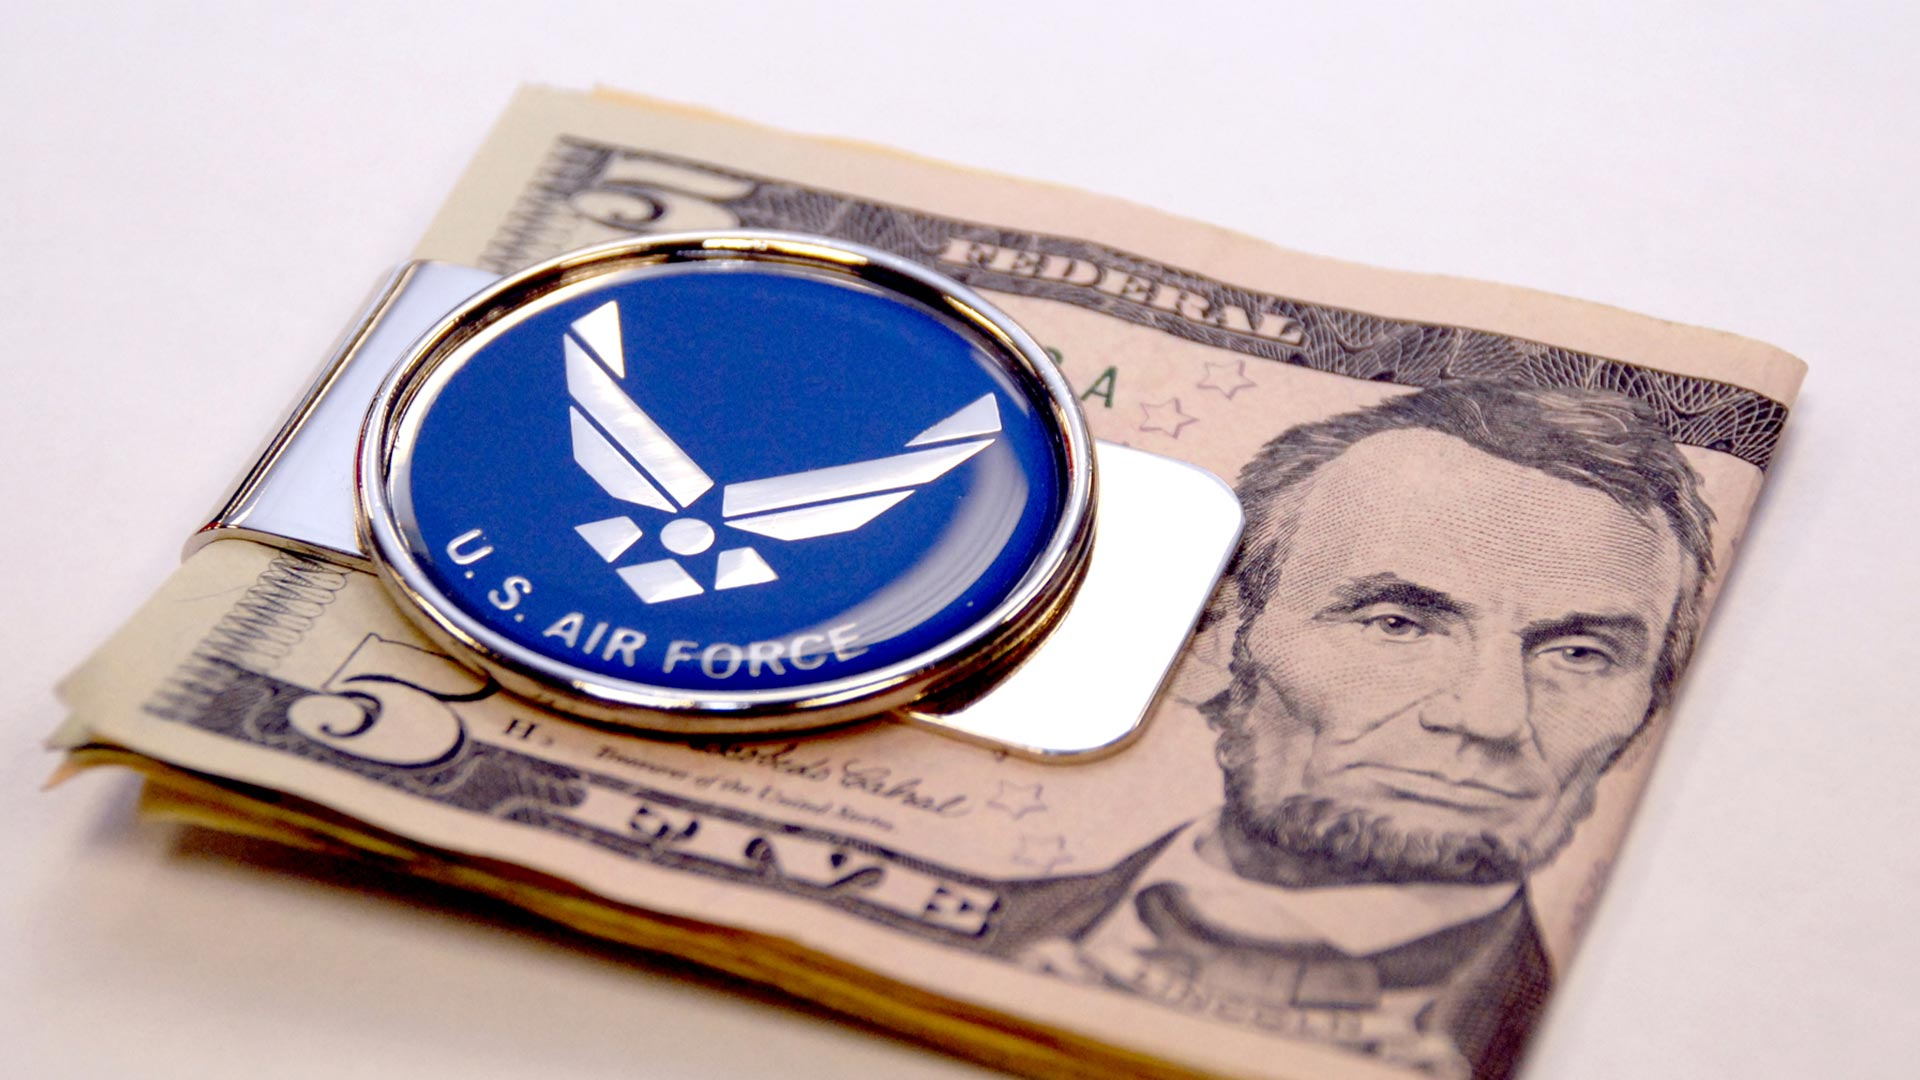 An Air Force money clip holds folded bills